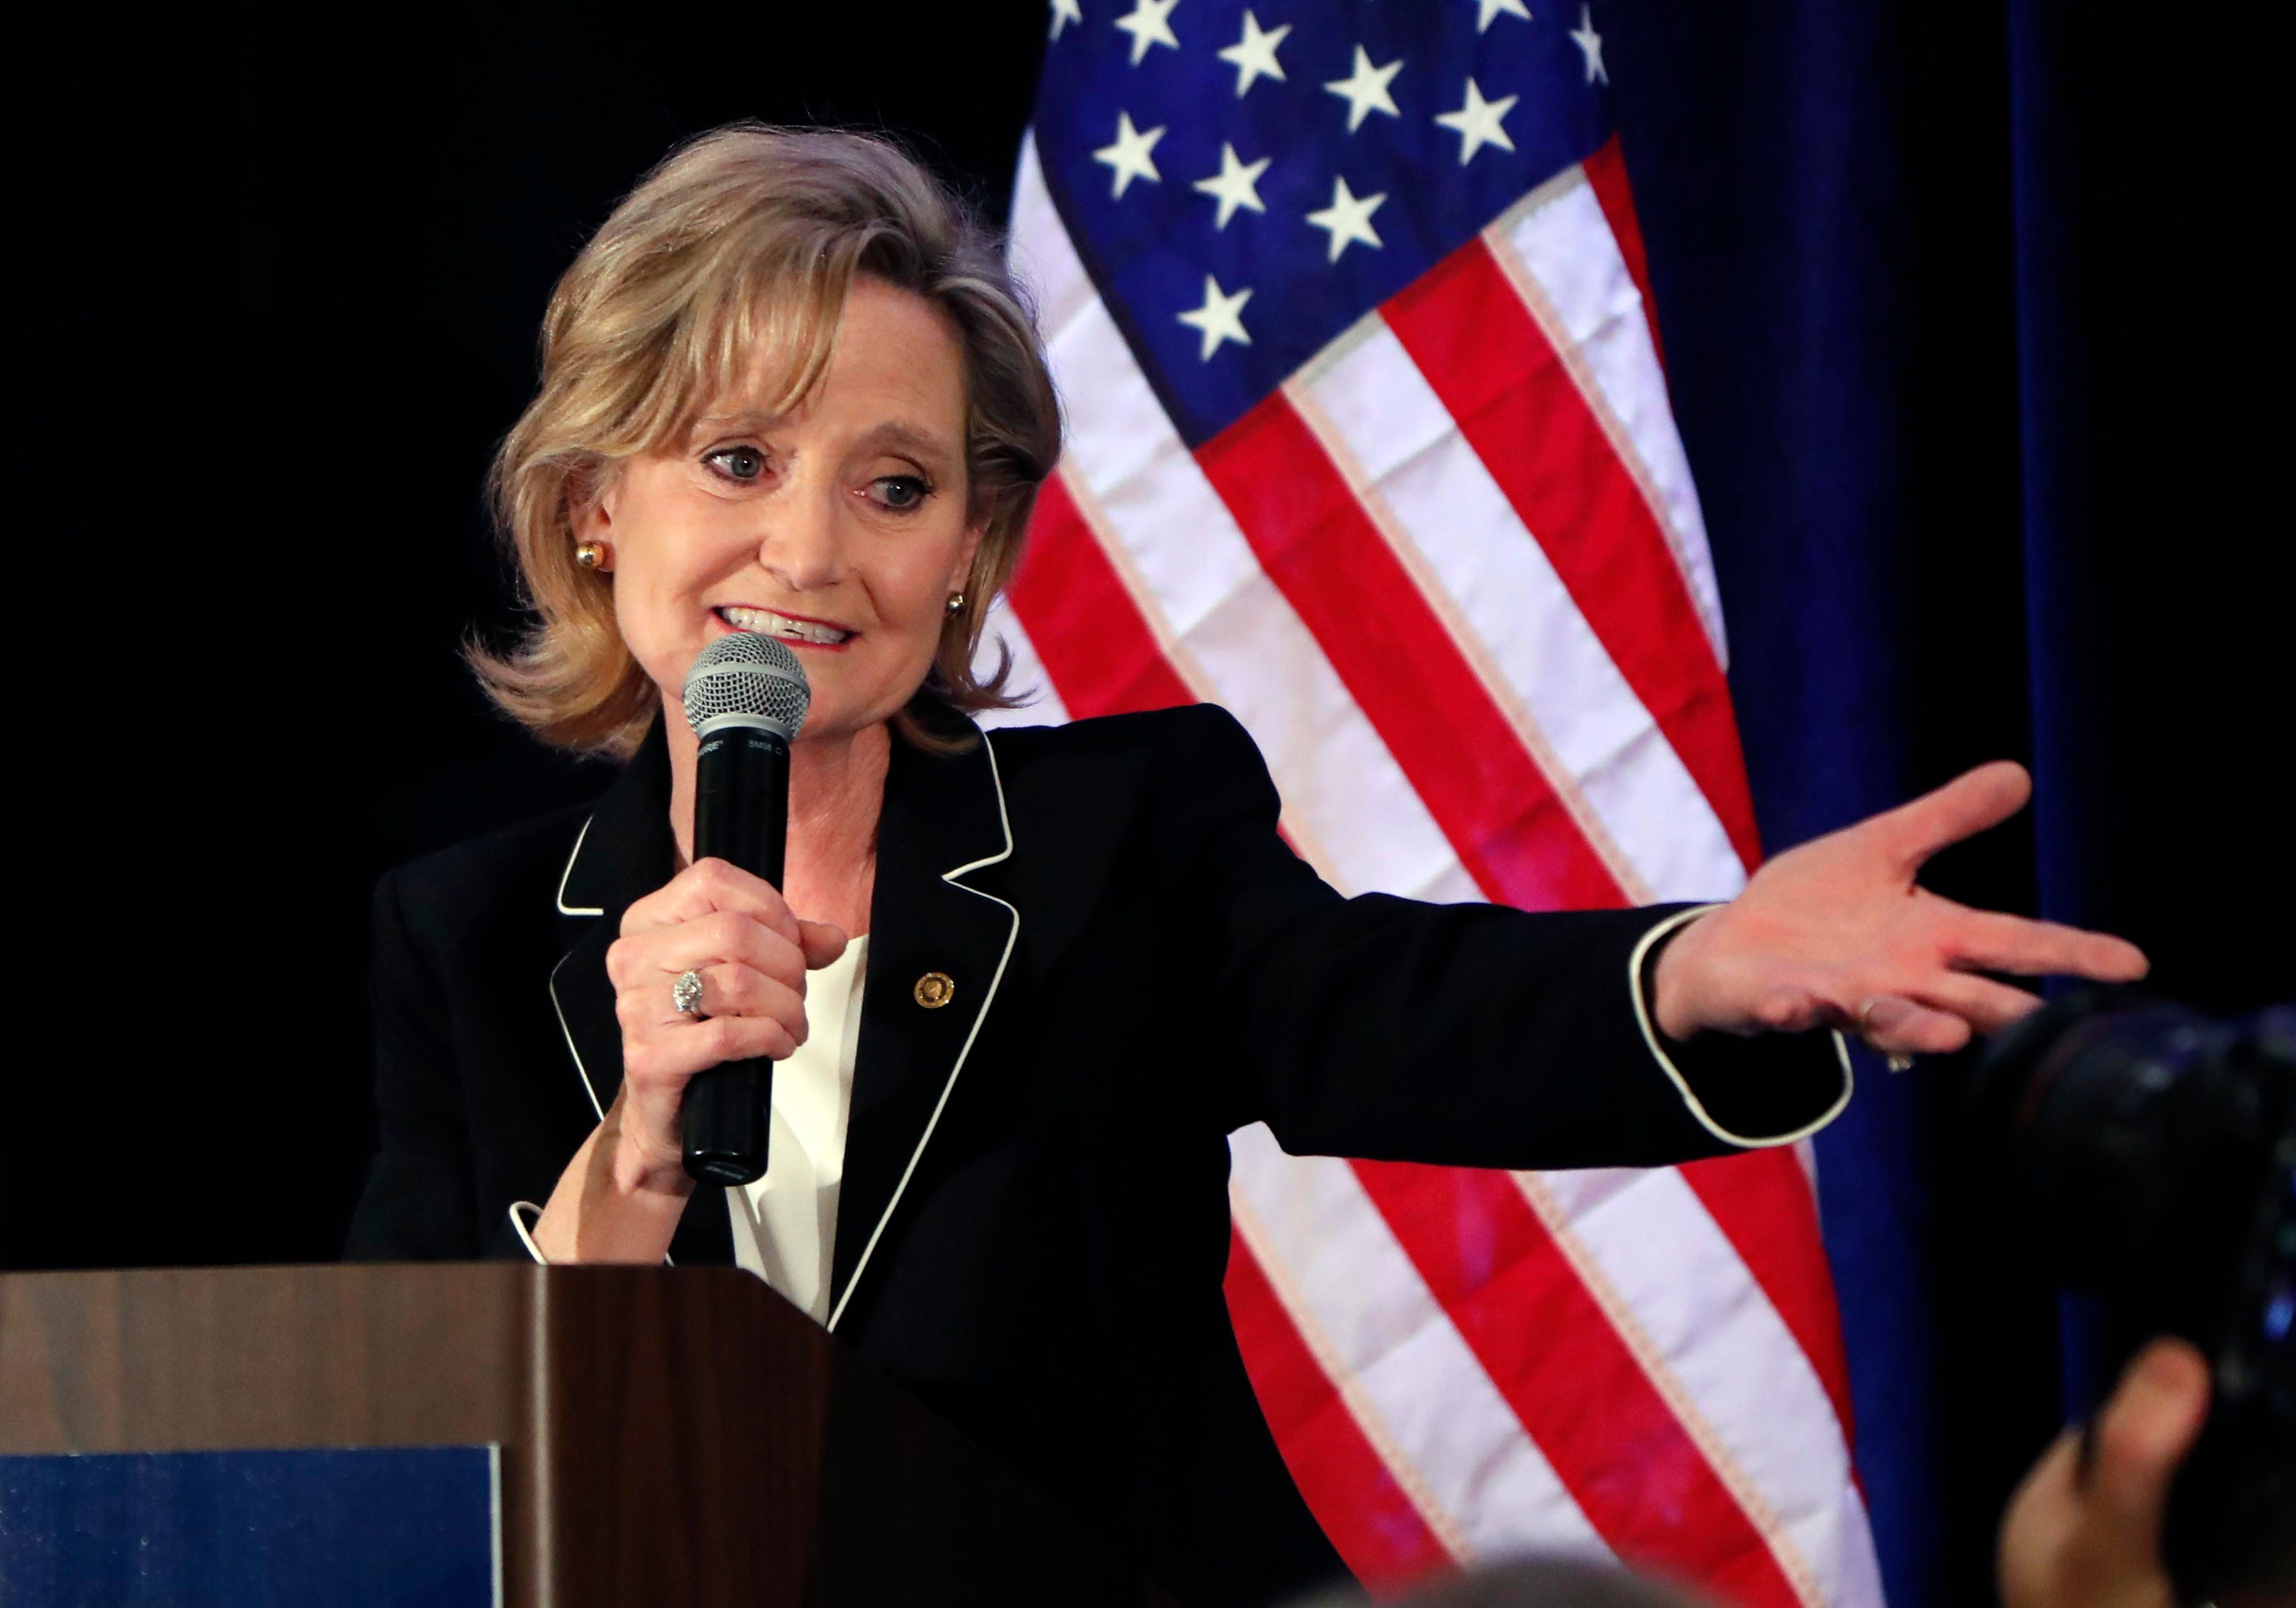 Cindy Hyde-Smith's Response To Whether She Regrets Racist Comments: 'I'm A